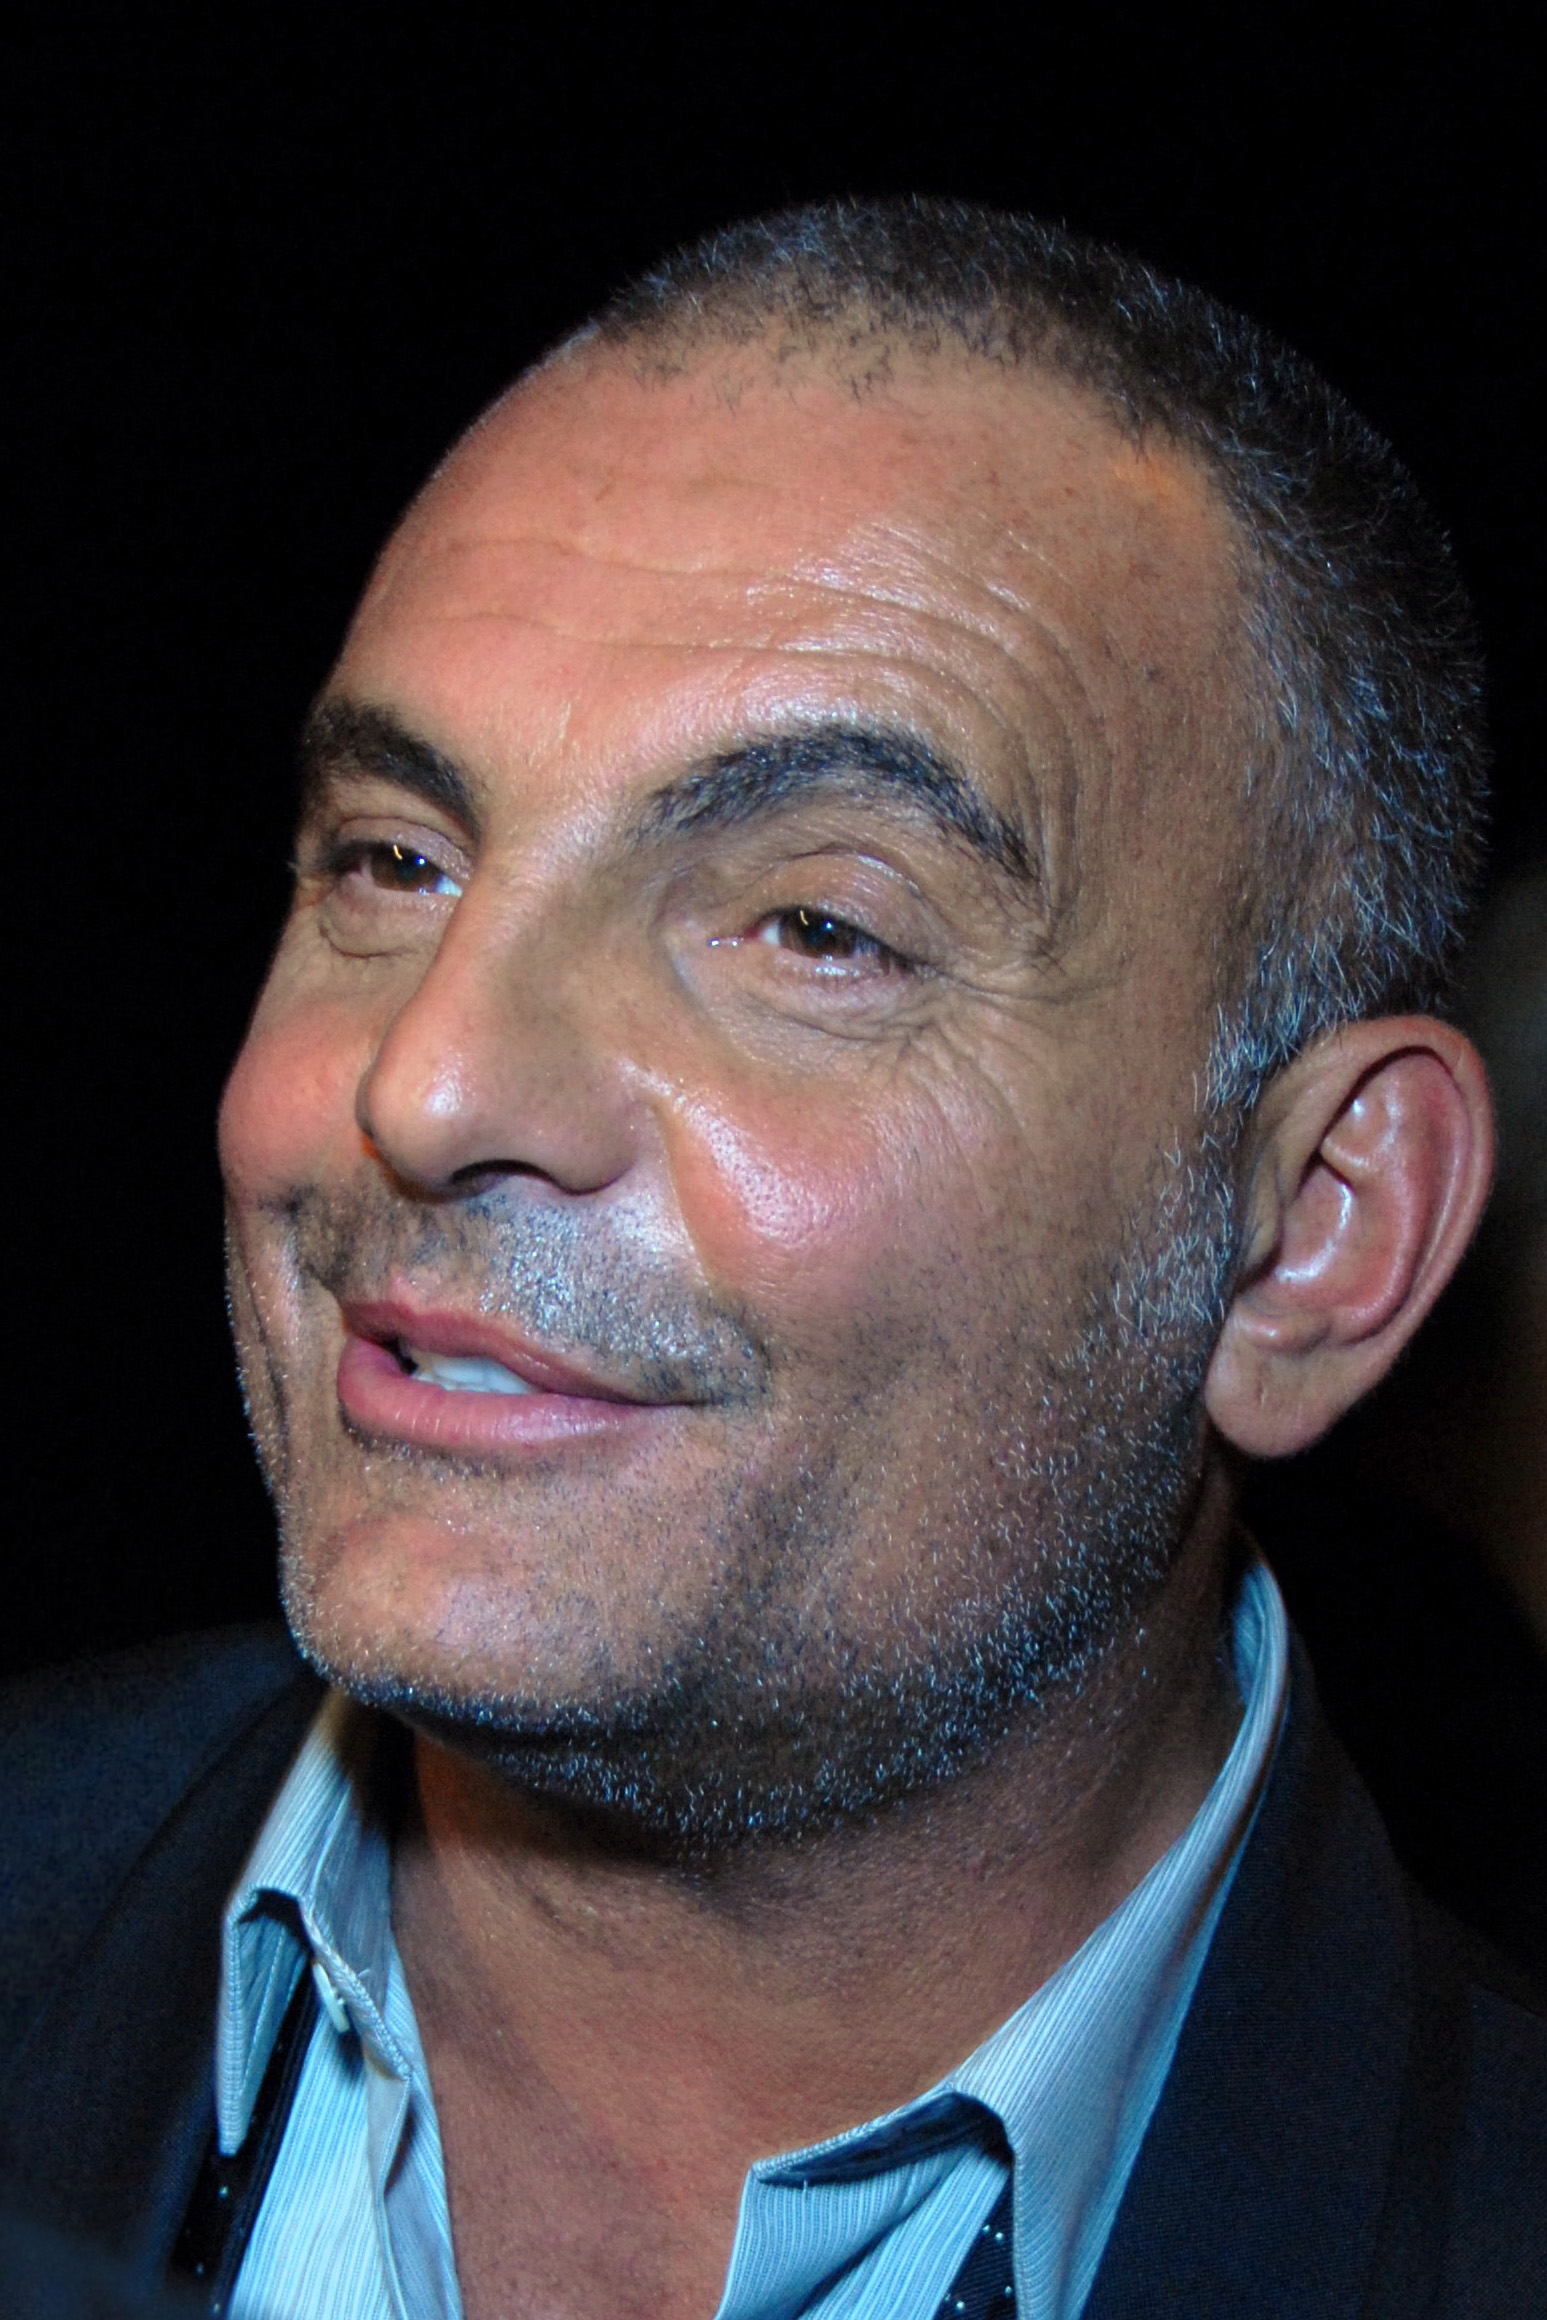 The 60-year old son of father (?) and mother(?) Christian Audigier in 2018 photo. Christian Audigier earned a  million dollar salary - leaving the net worth at  million in 2018